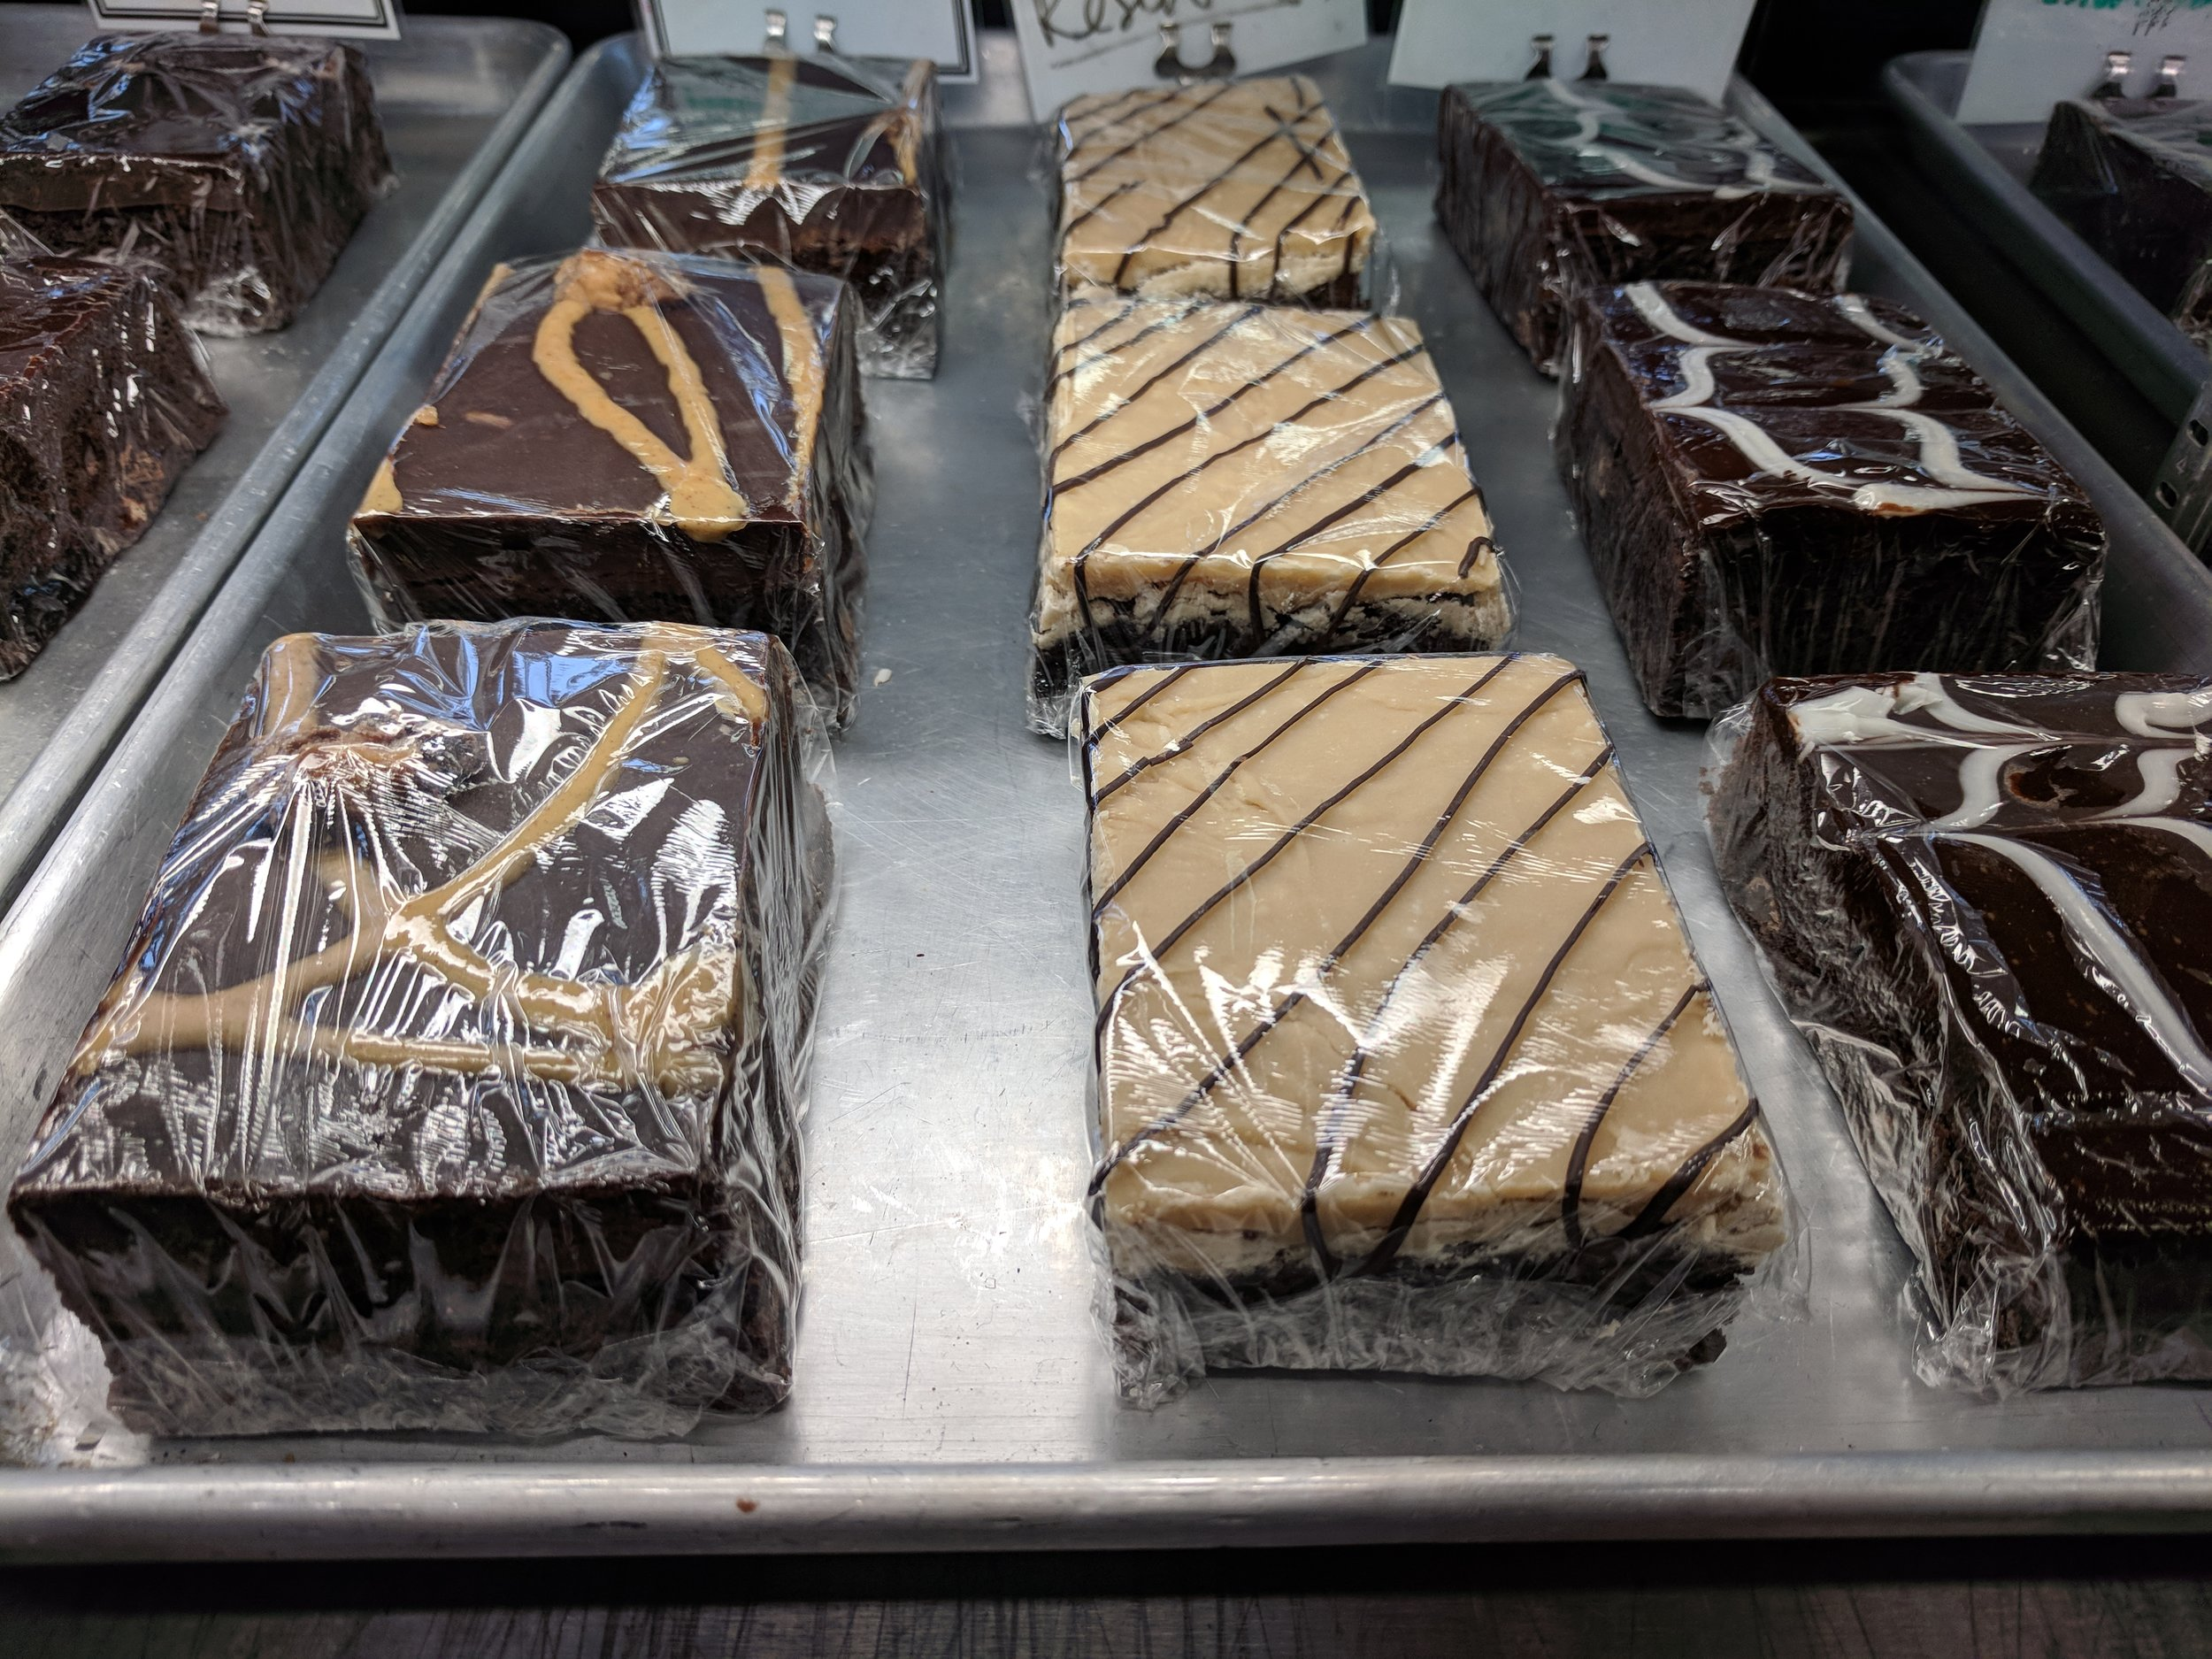 Ice Cream's not our only thing. We also make custom baked goods! Brownies. Cookies. Cakes. Macarons too! -